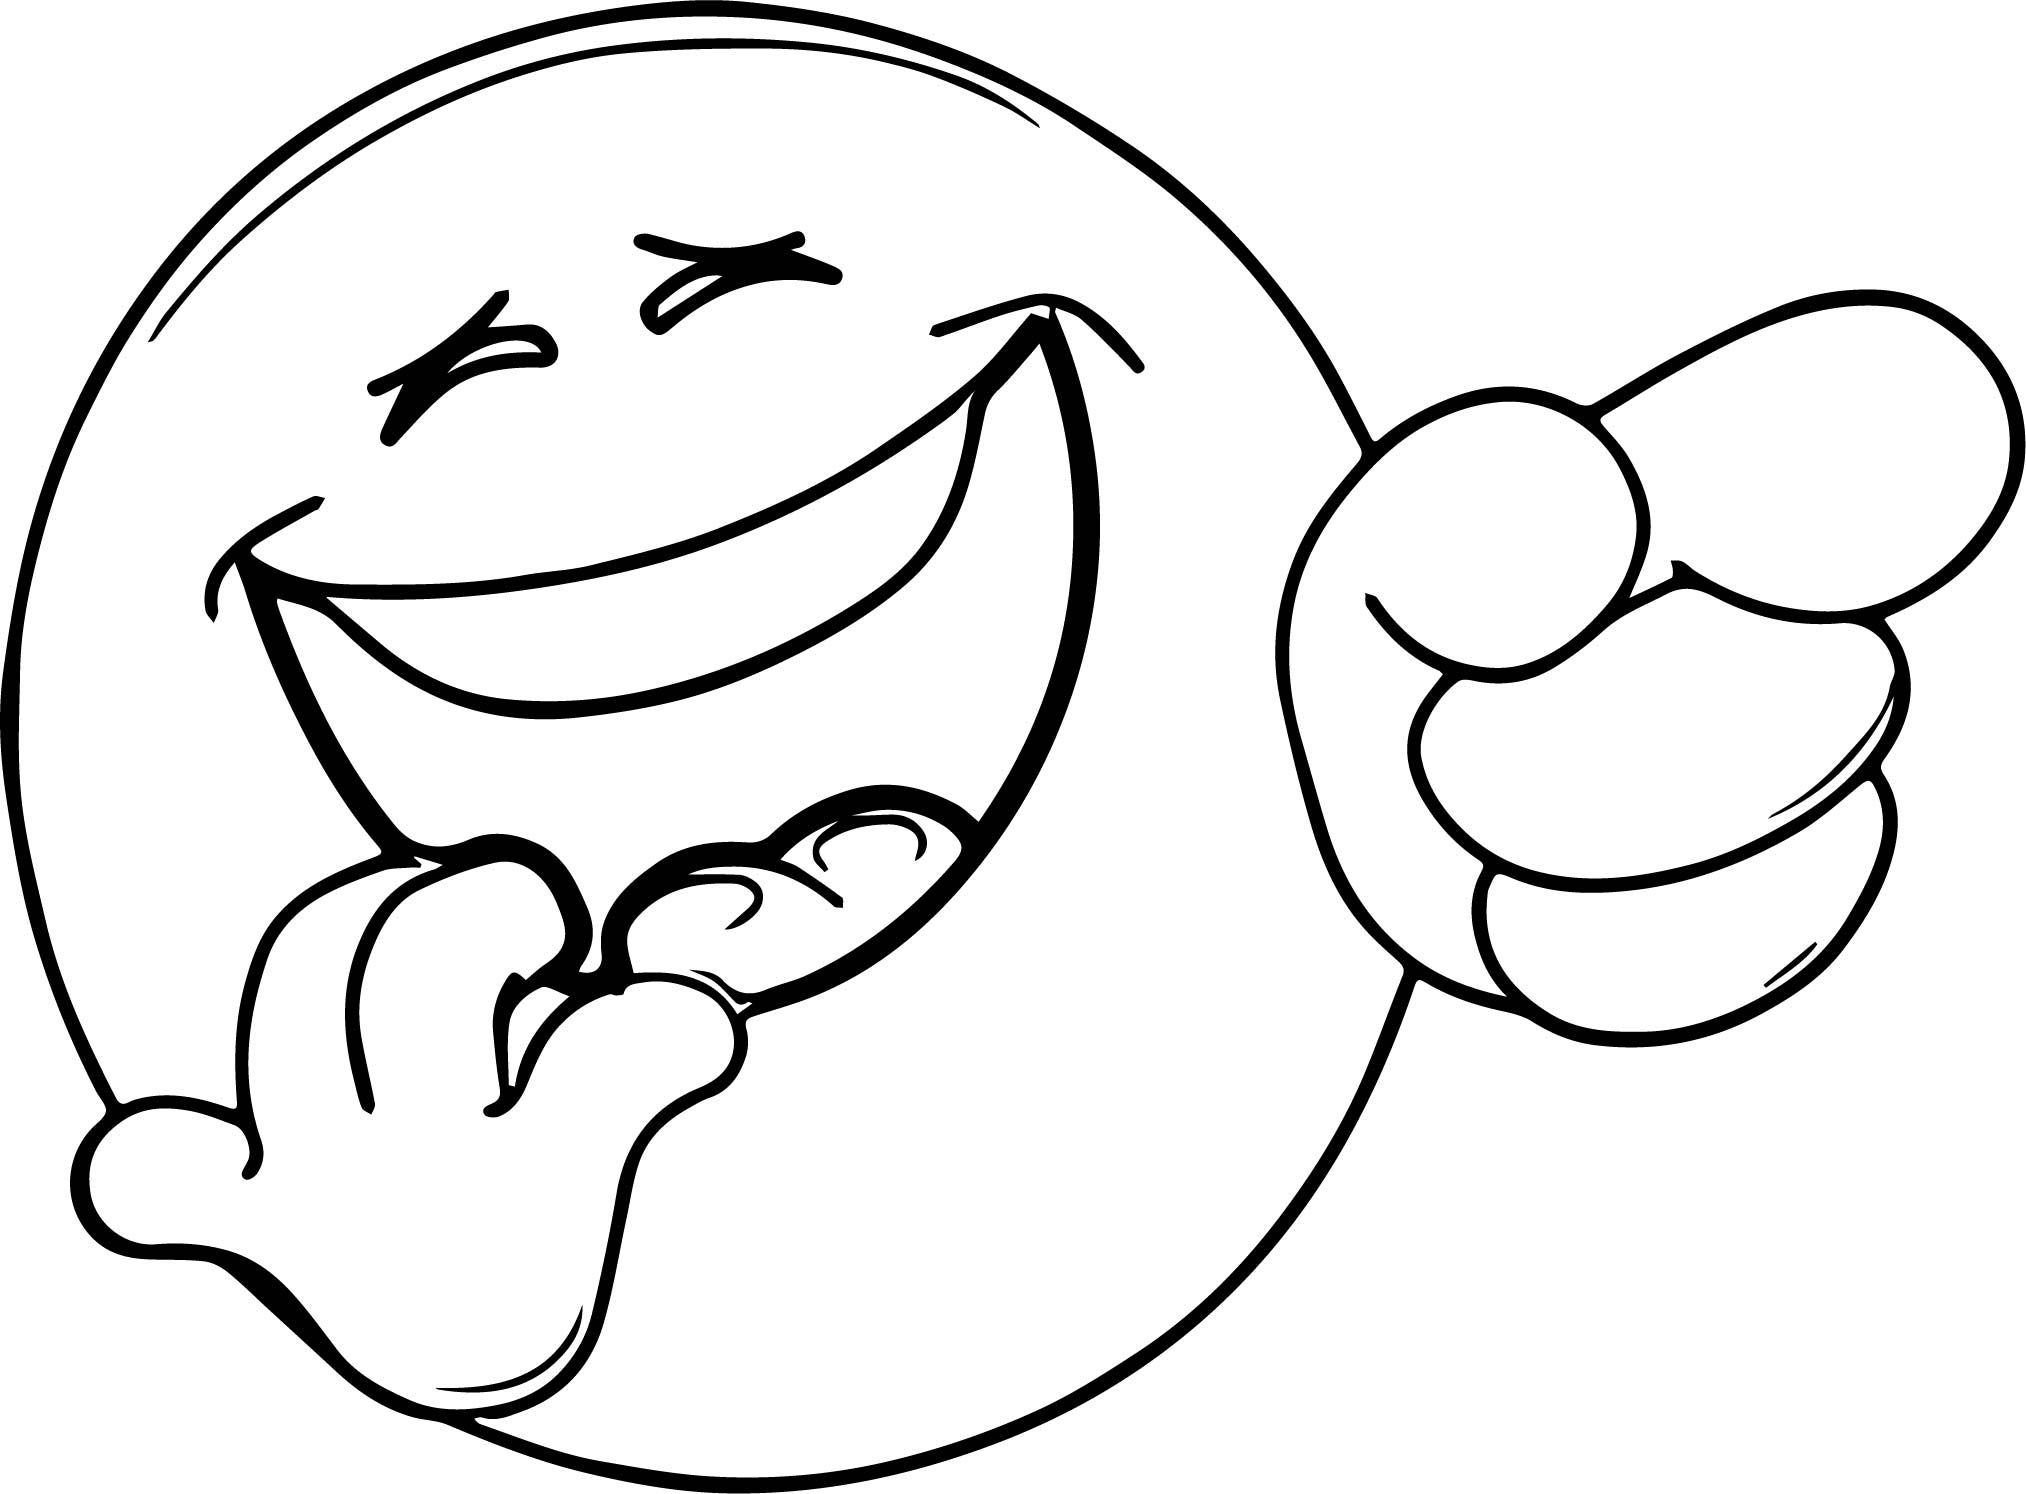 Cool Very Laugh Face Emoticon Coloring Page